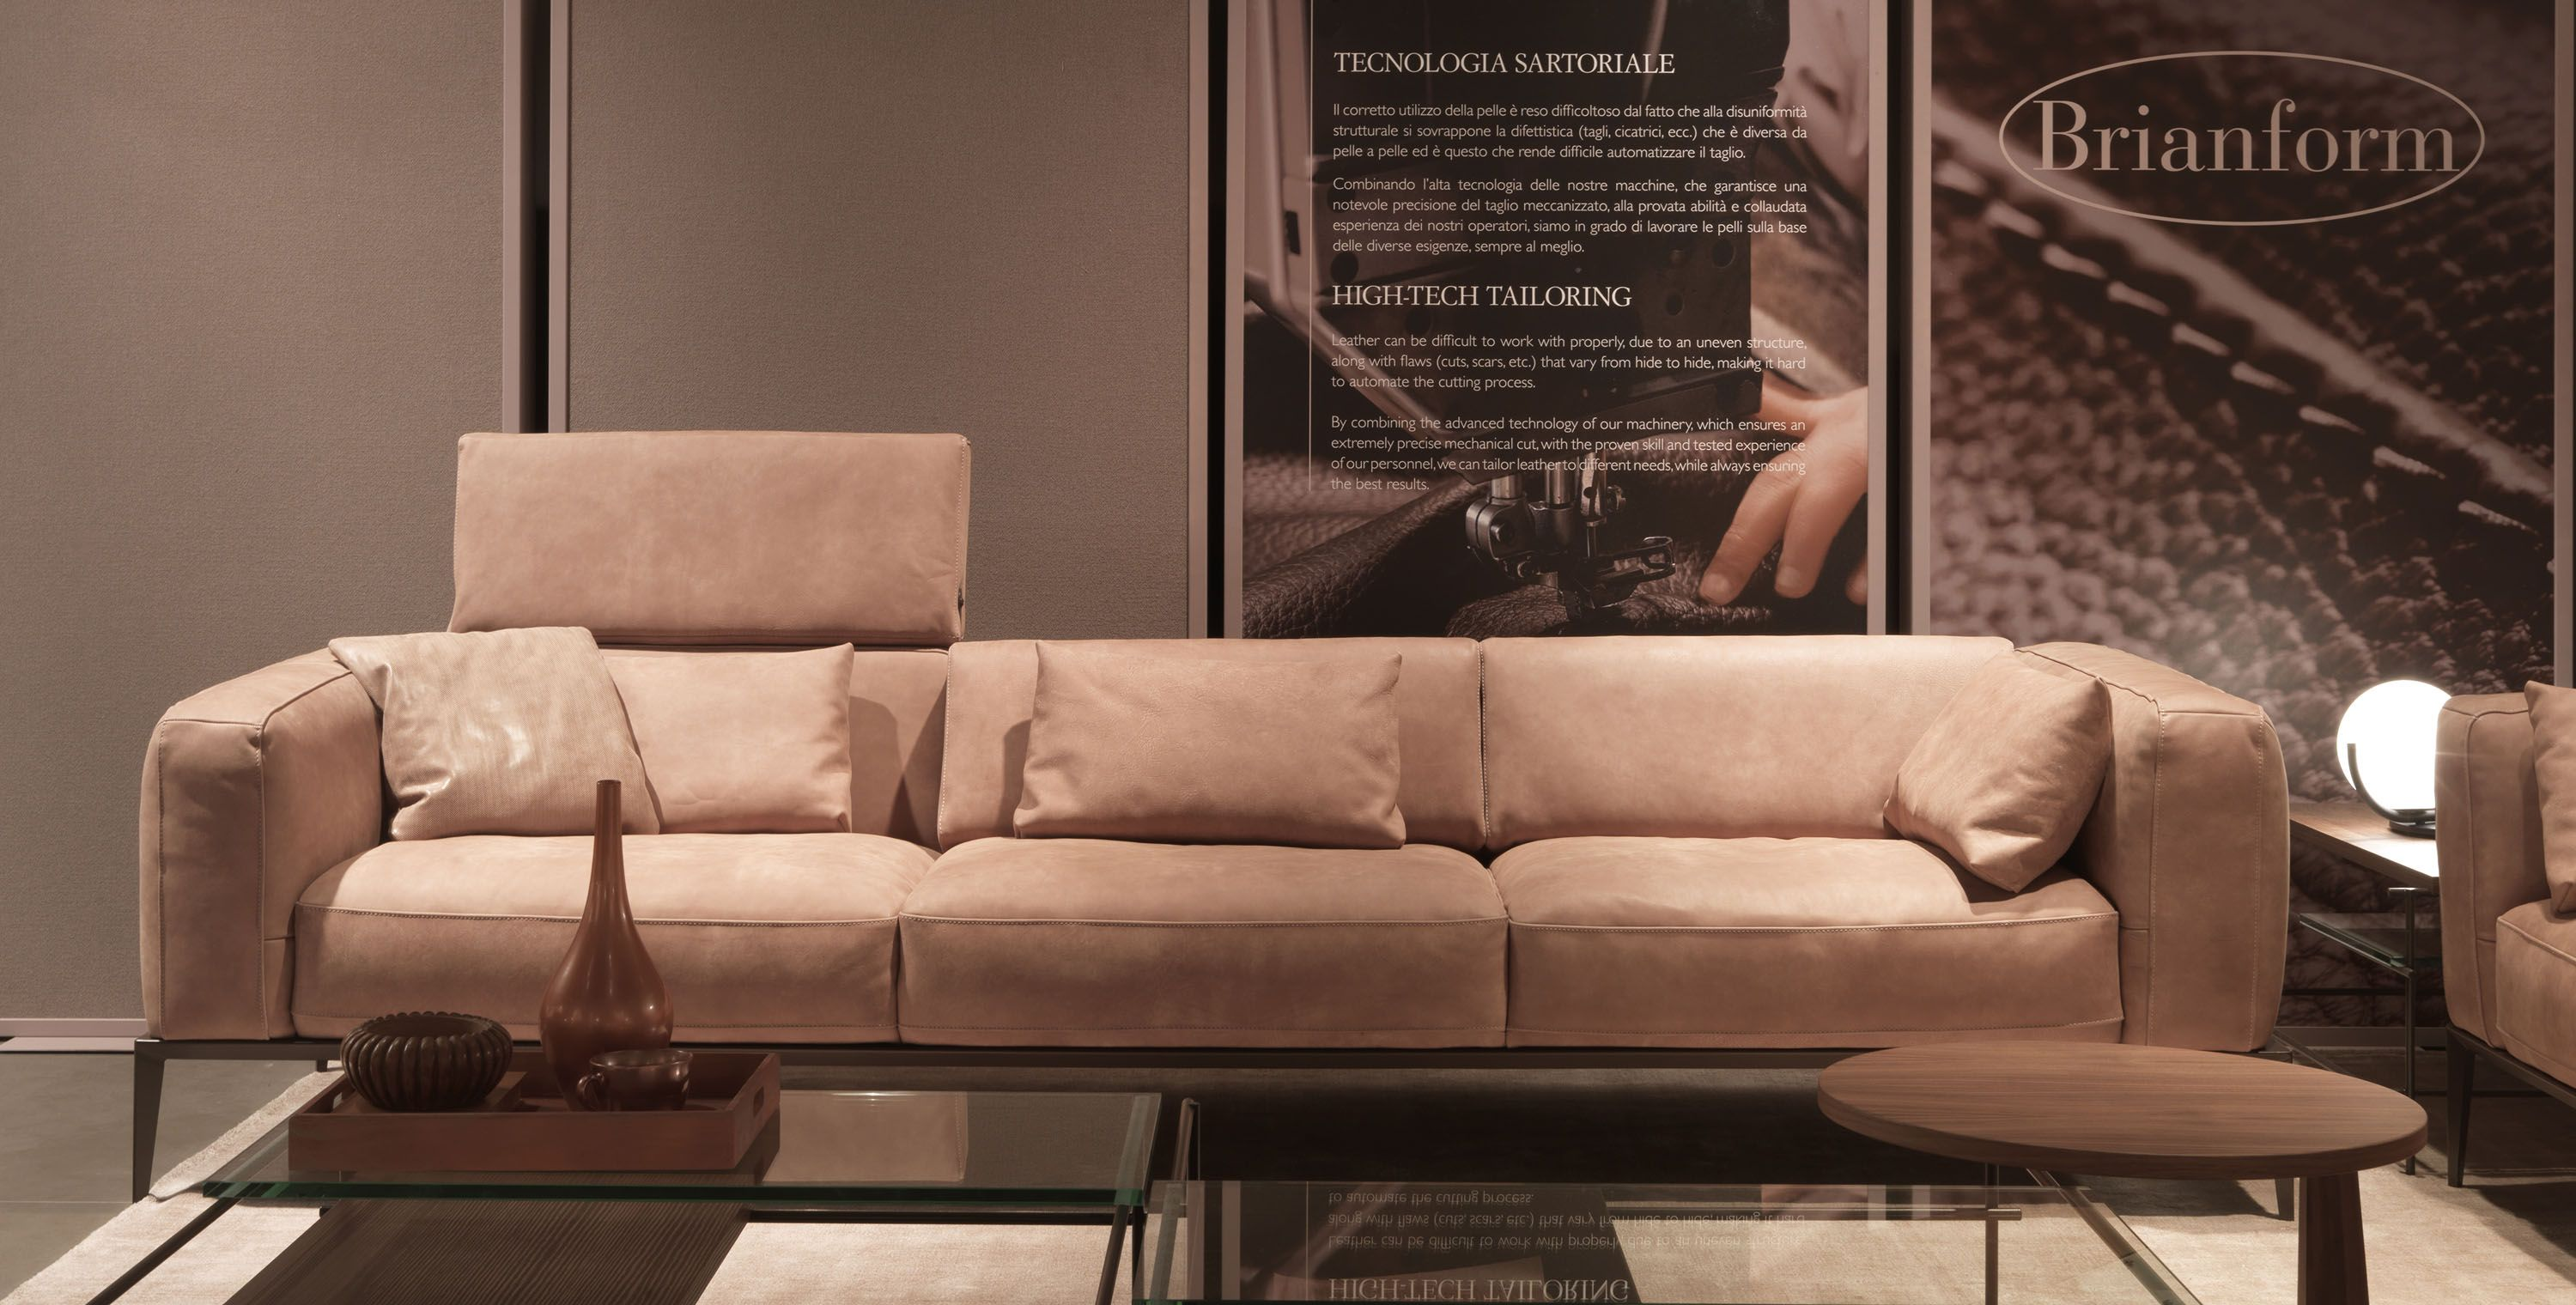 Two Pieced Italian Leather Sofa Set In Tan Leather Sofa Set Italian Sofa Designs Genuine Leather Sofa